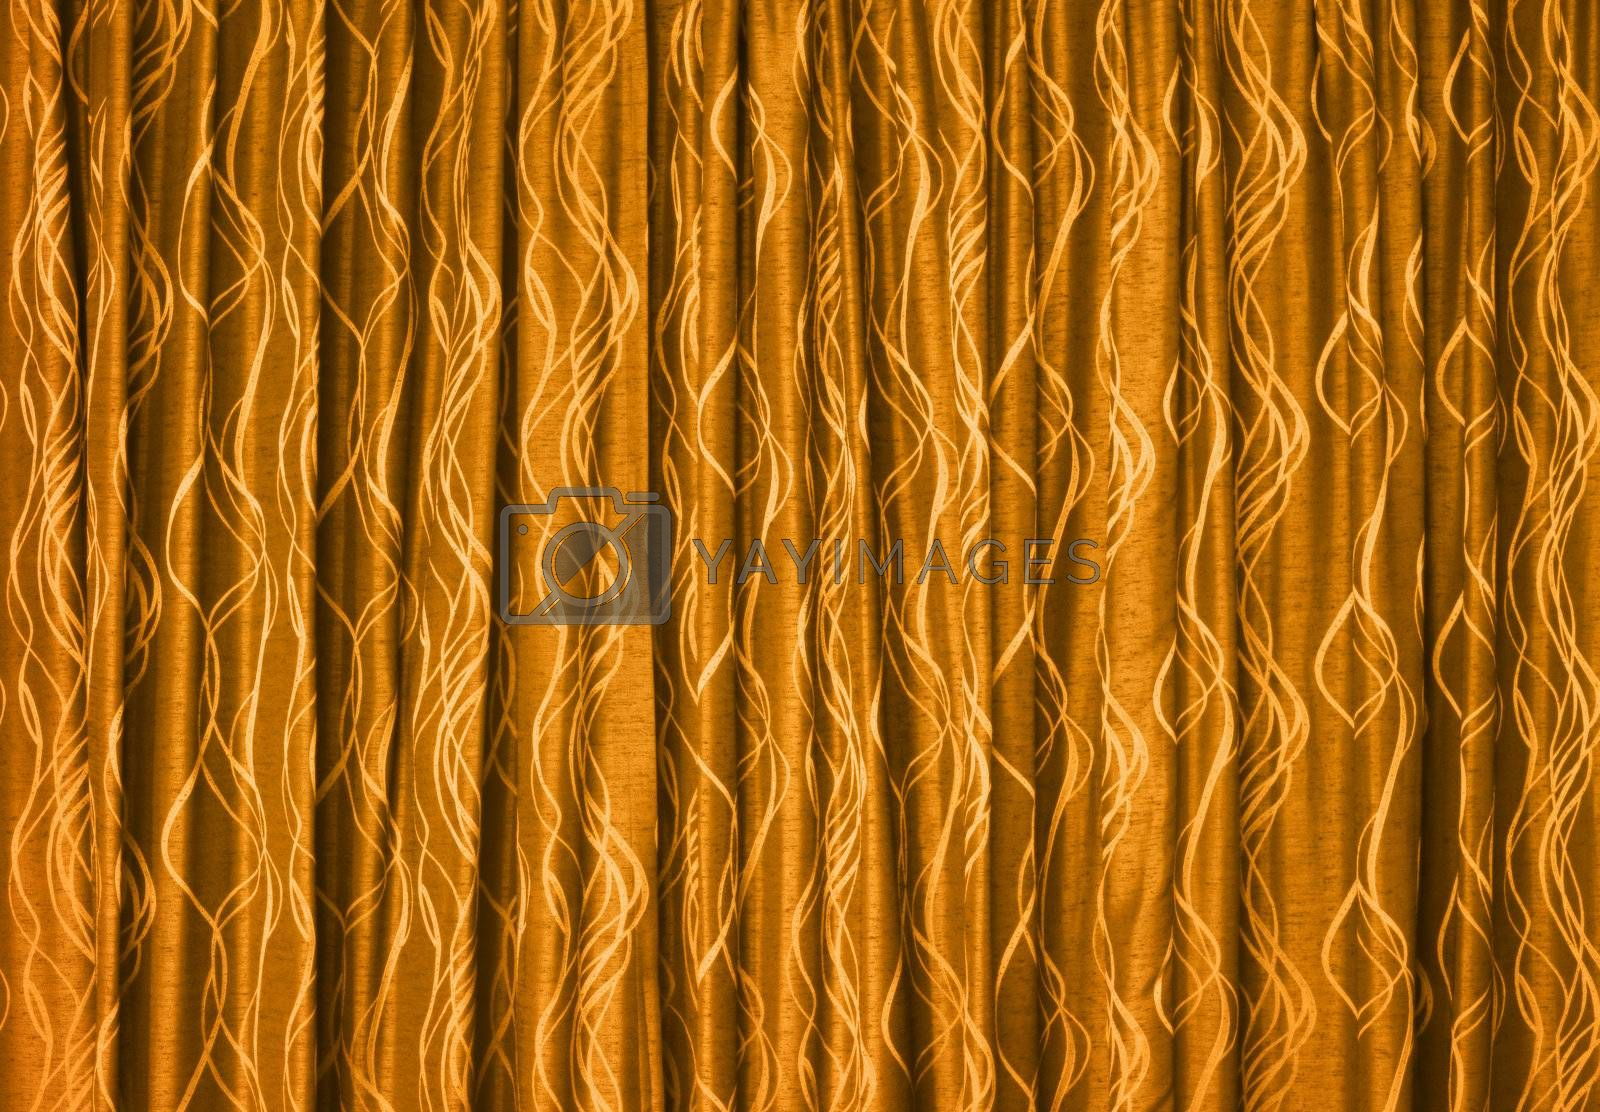 The yellow drapes - Textile background